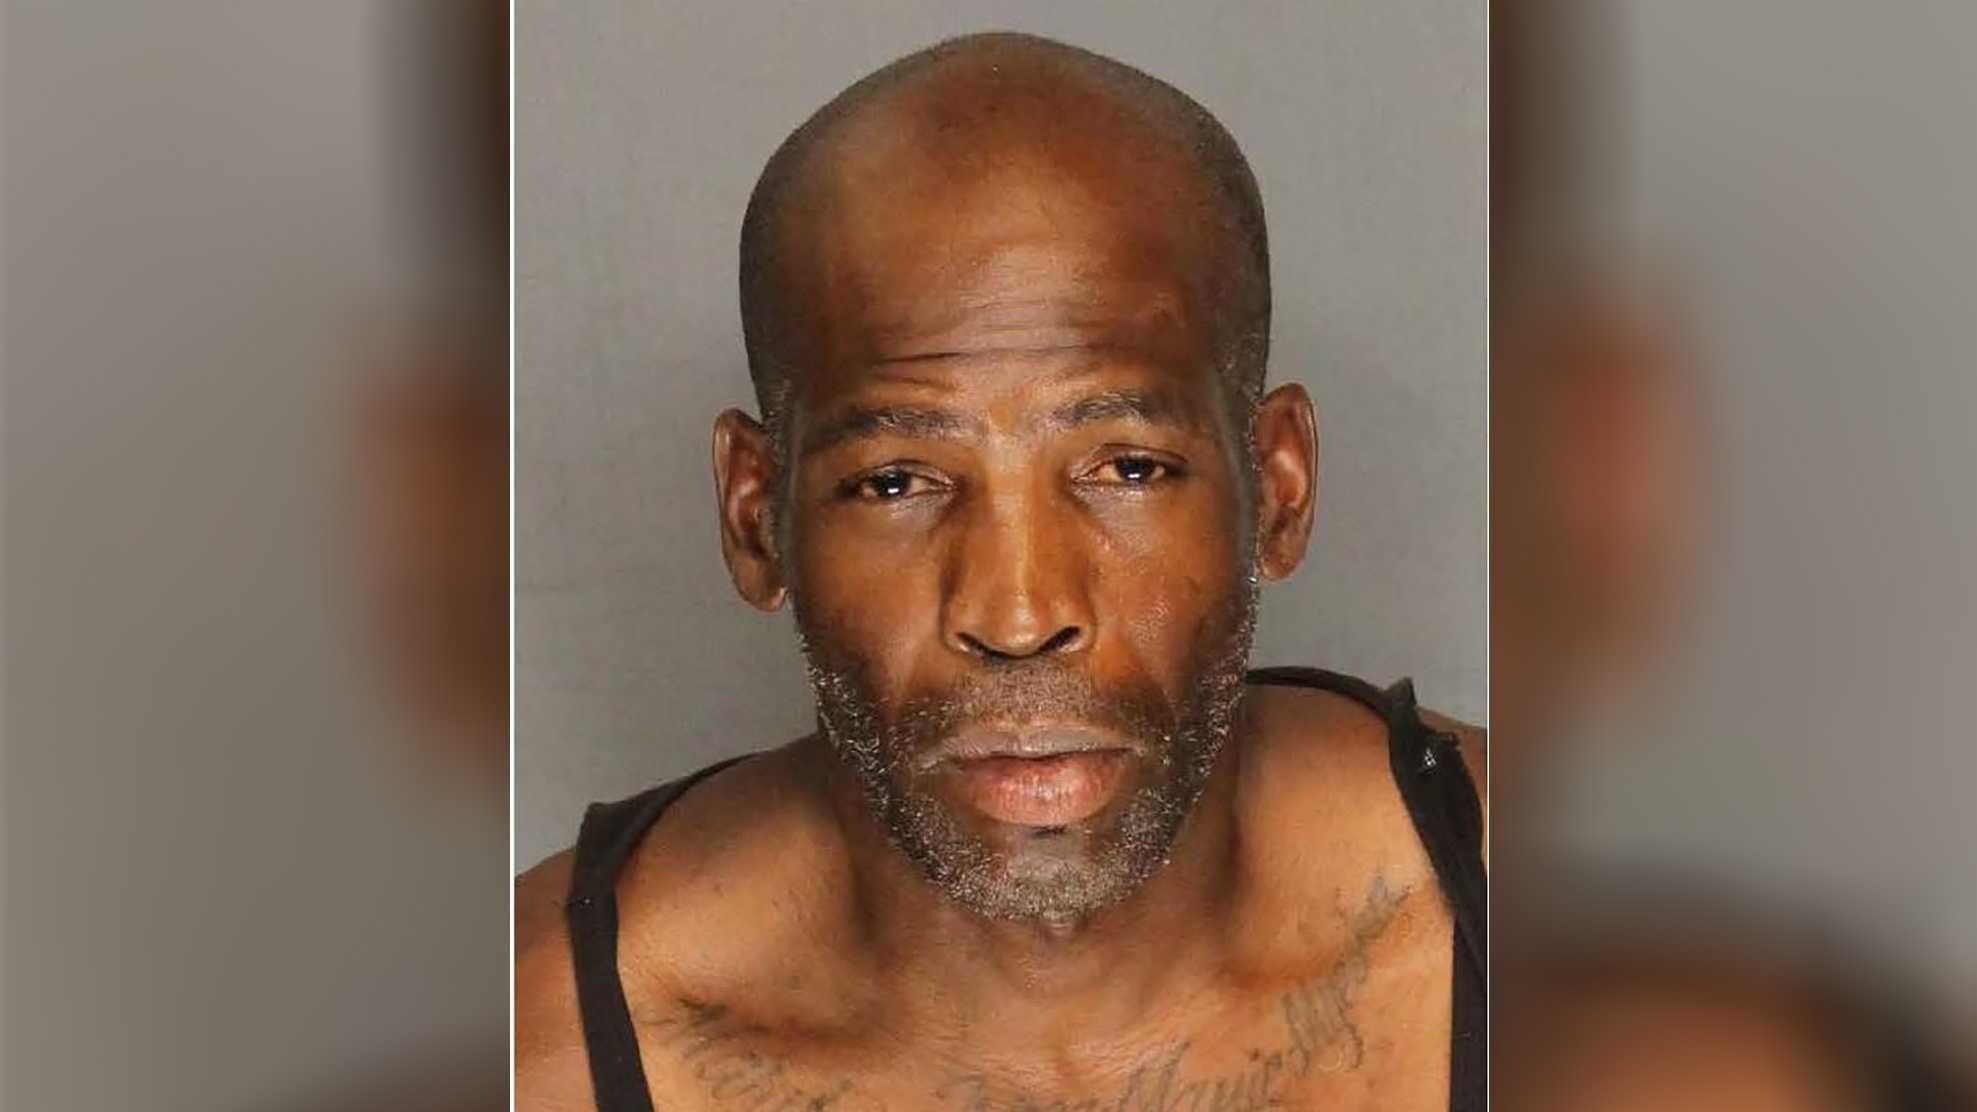 Ronald Lamar Harris, 49, is an absconded sex offender who arrested by authorities on Tuesday.